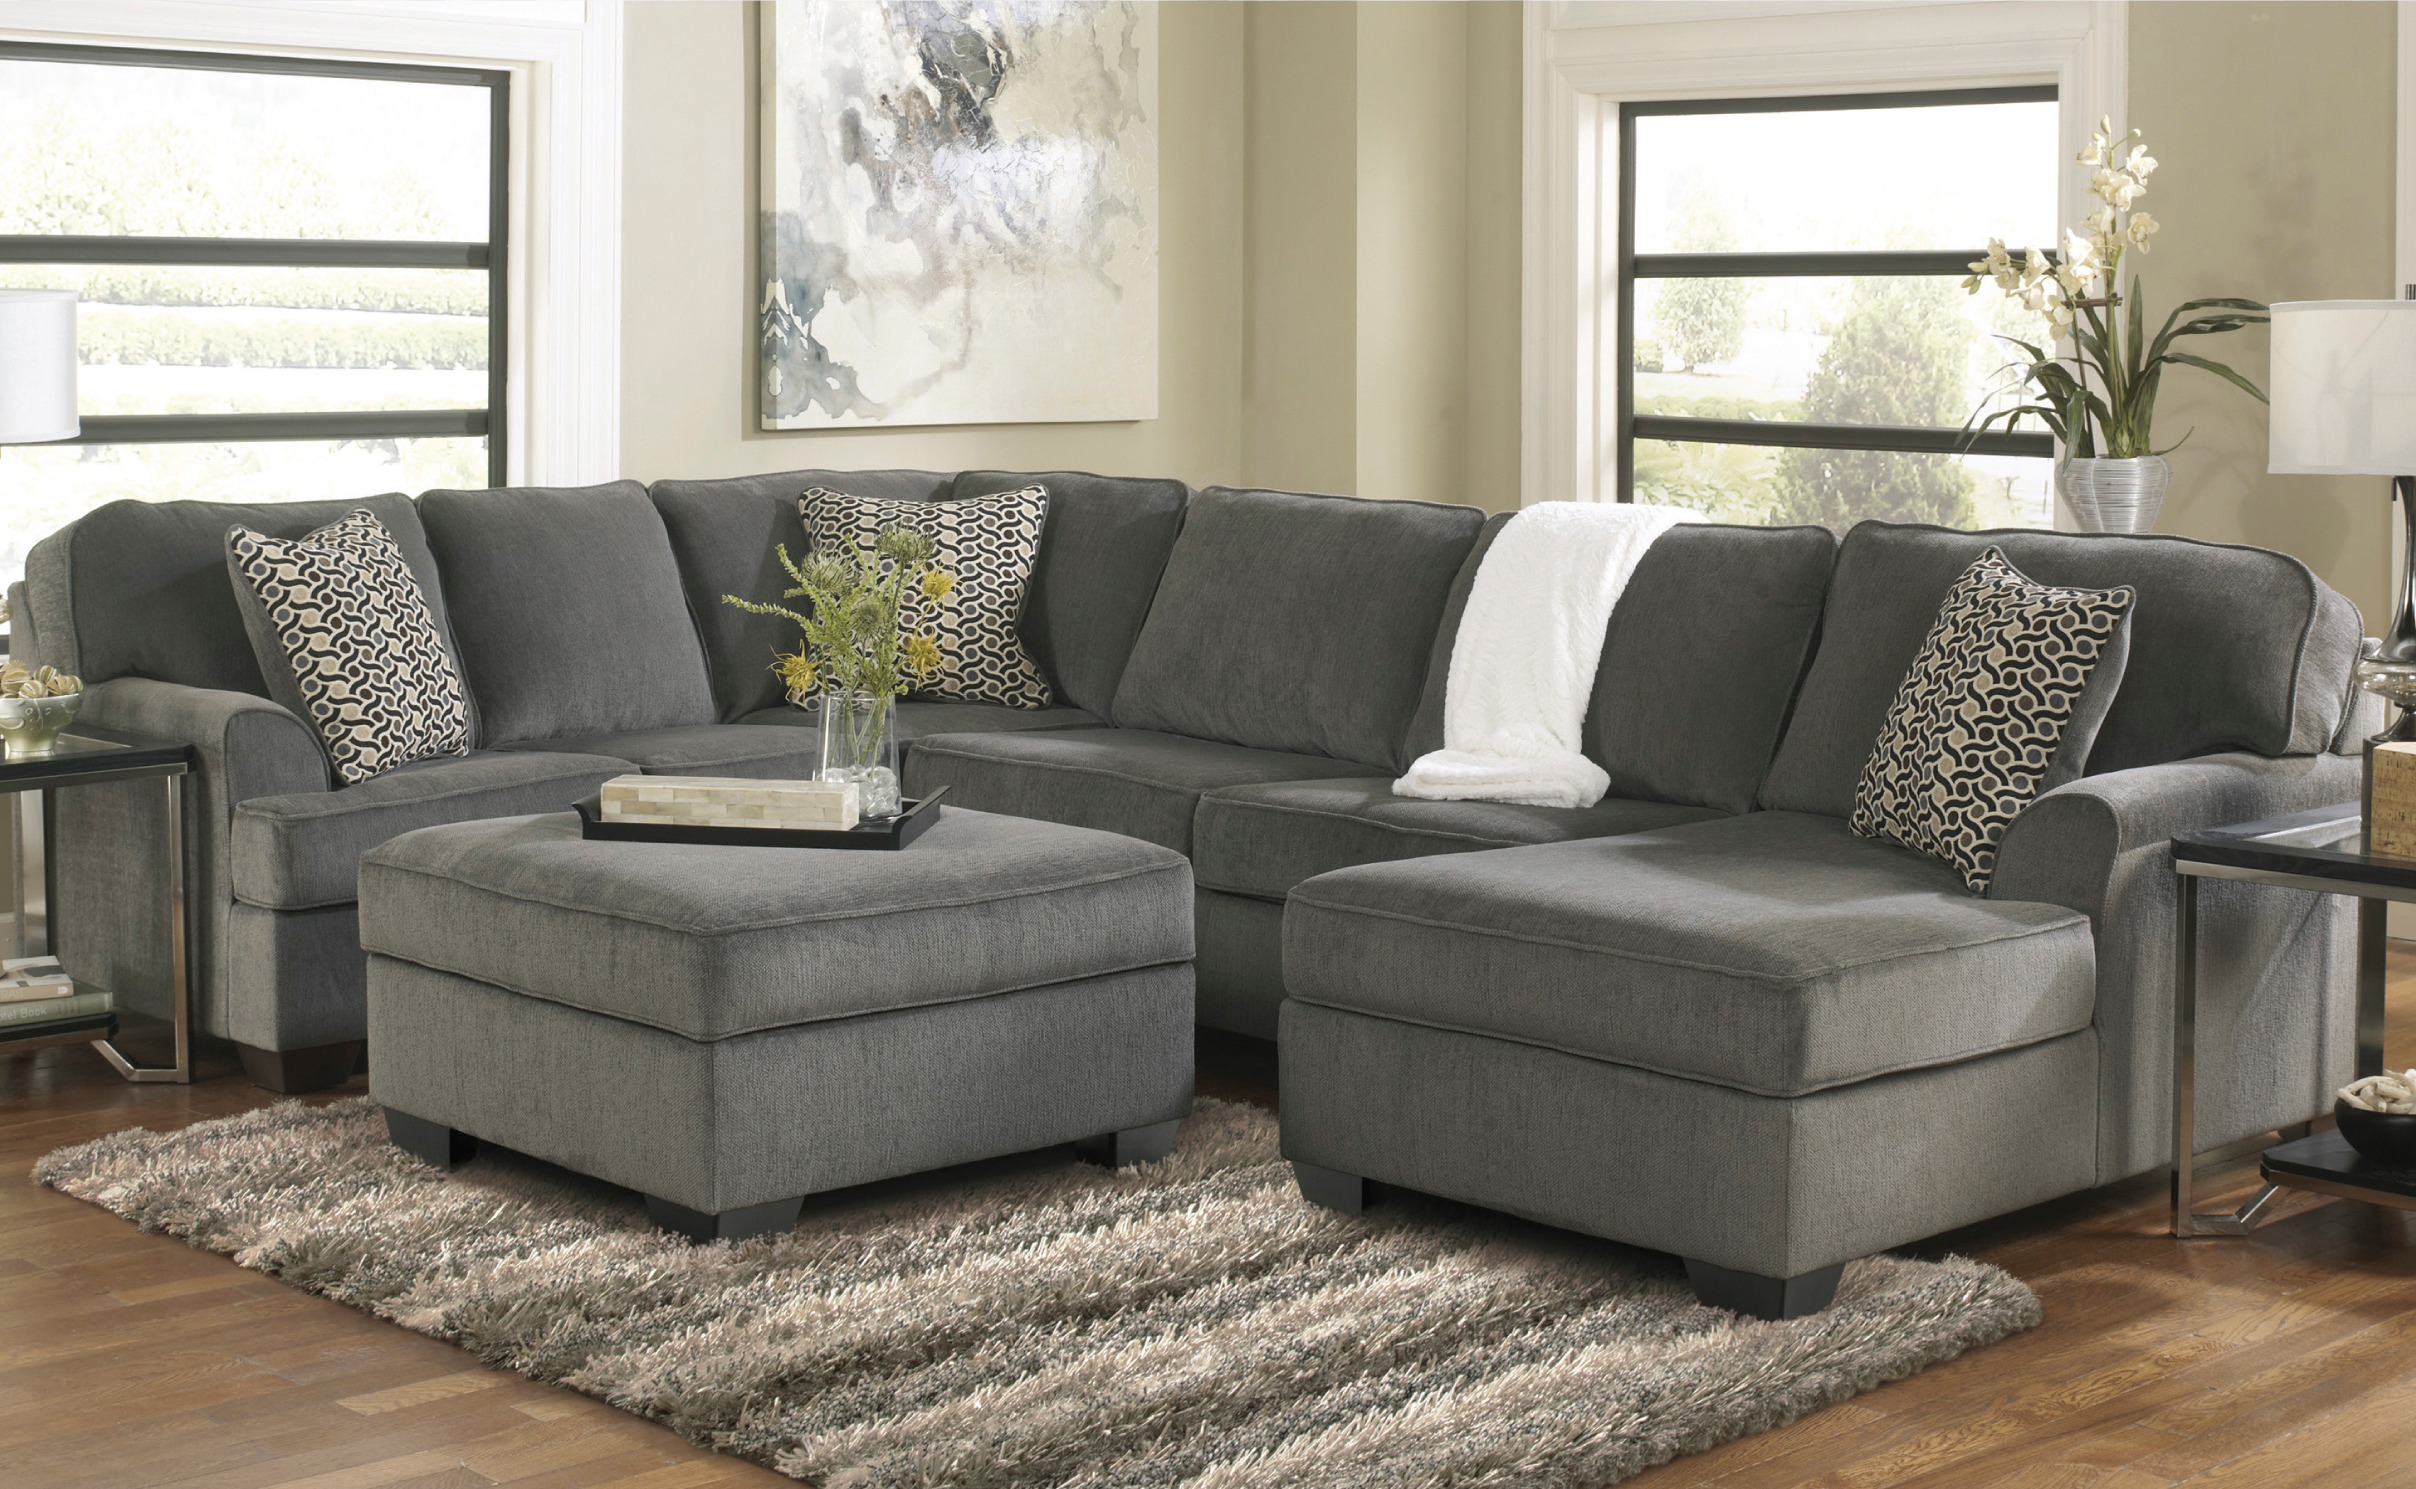 Sofa Beds Sale Chicago